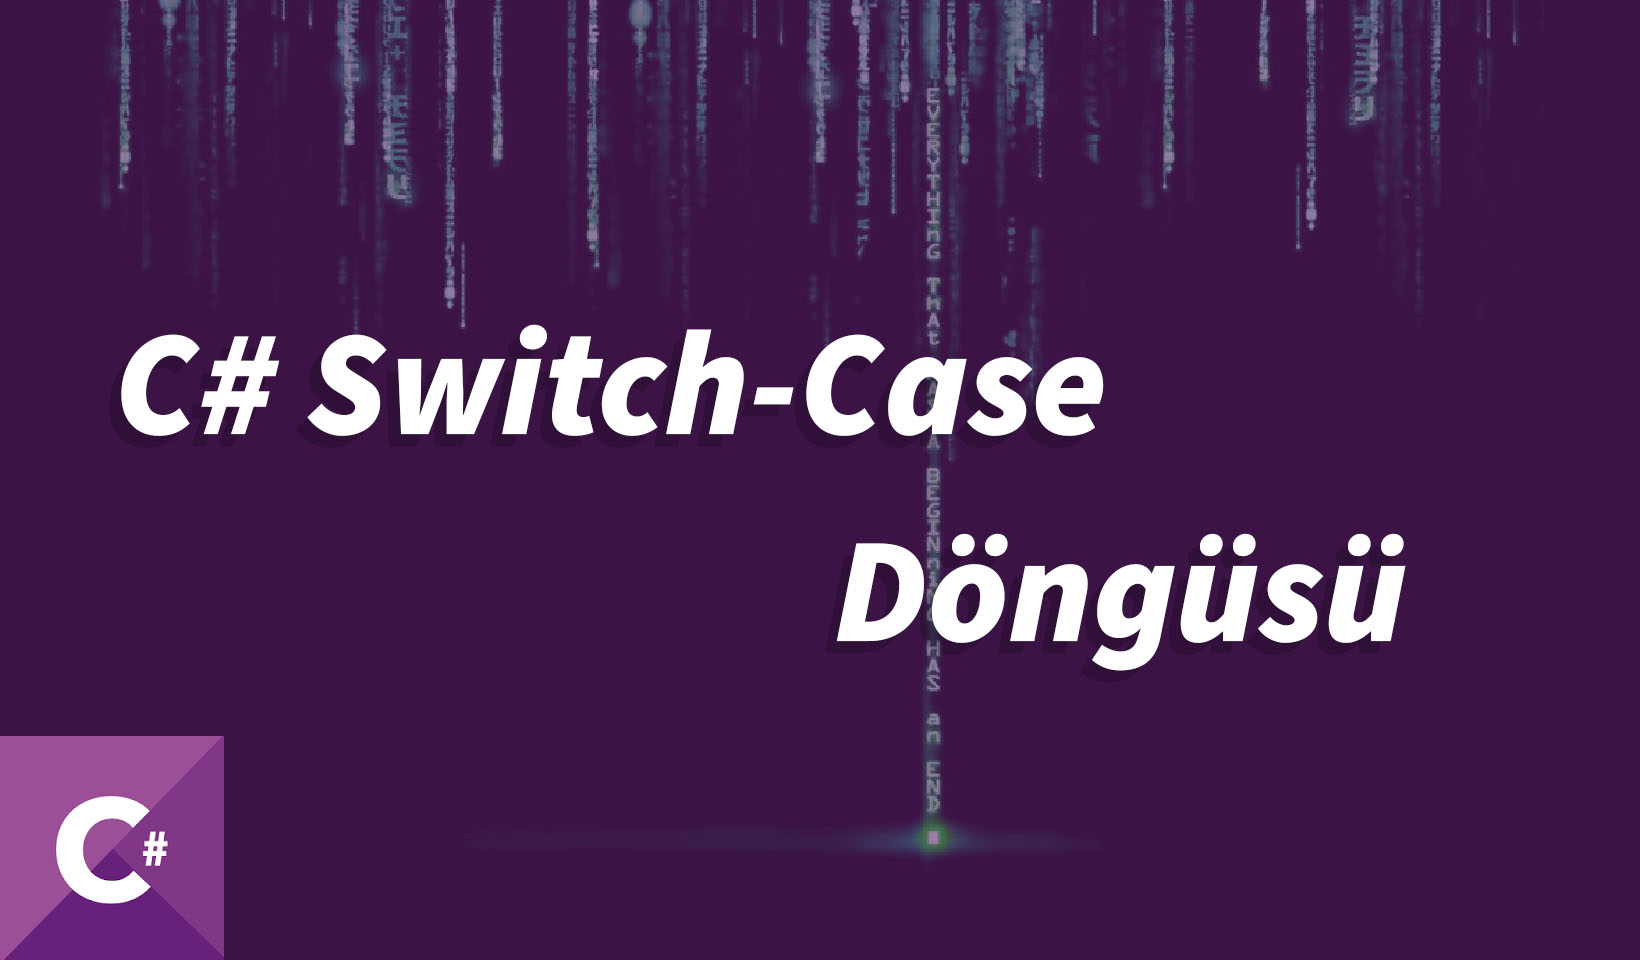 switch case, c# switch case, c sharp switch case, c# switch, c sharp switch, kodlama öğren, yazılım öğren, c# öğren, c sharp öğren